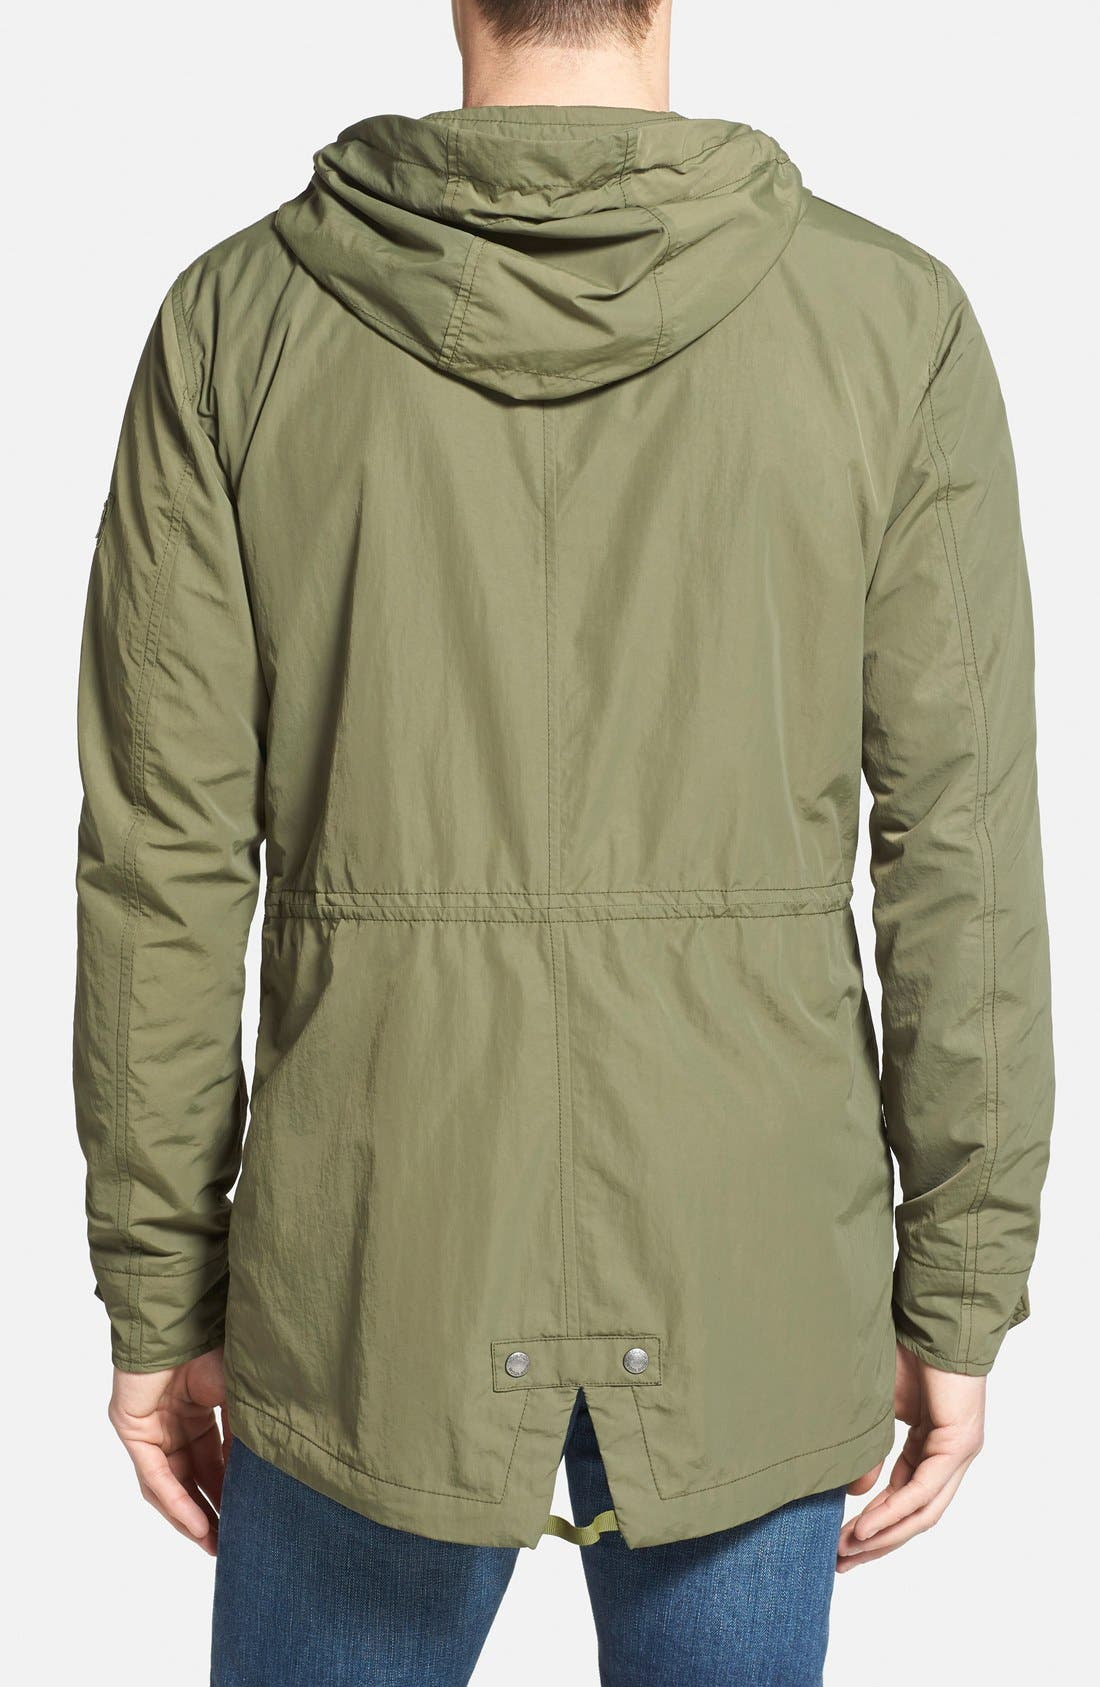 Woolrich Military Anorak,                             Alternate thumbnail 2, color,                             337